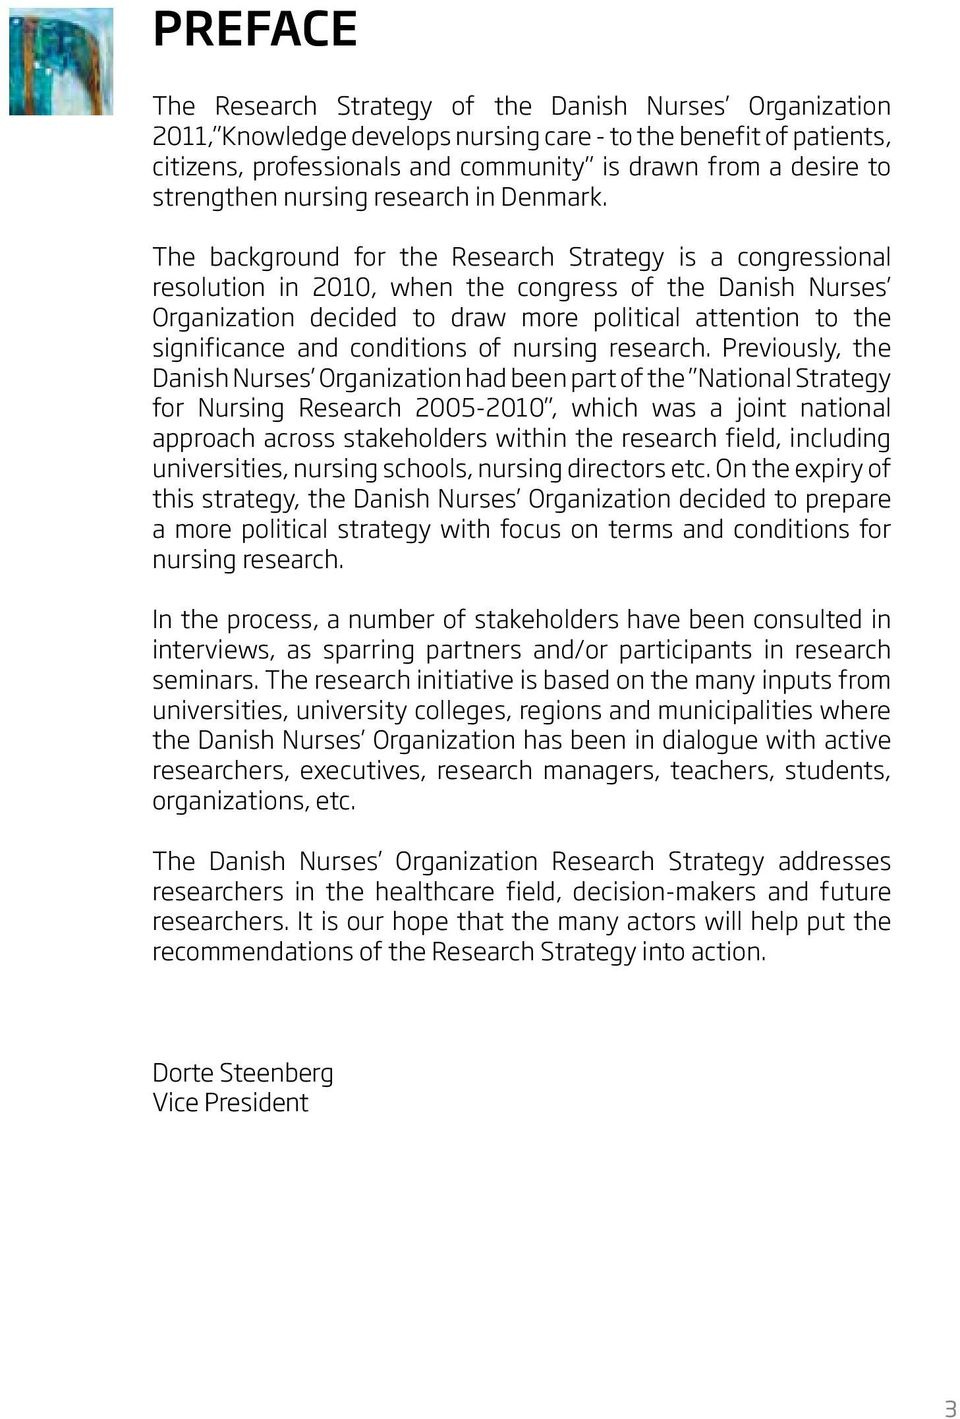 The background for the Research Strategy is a congressional resolution in 2010, when the congress of the Danish Nurses Organization decided to draw more political attention to the significance and